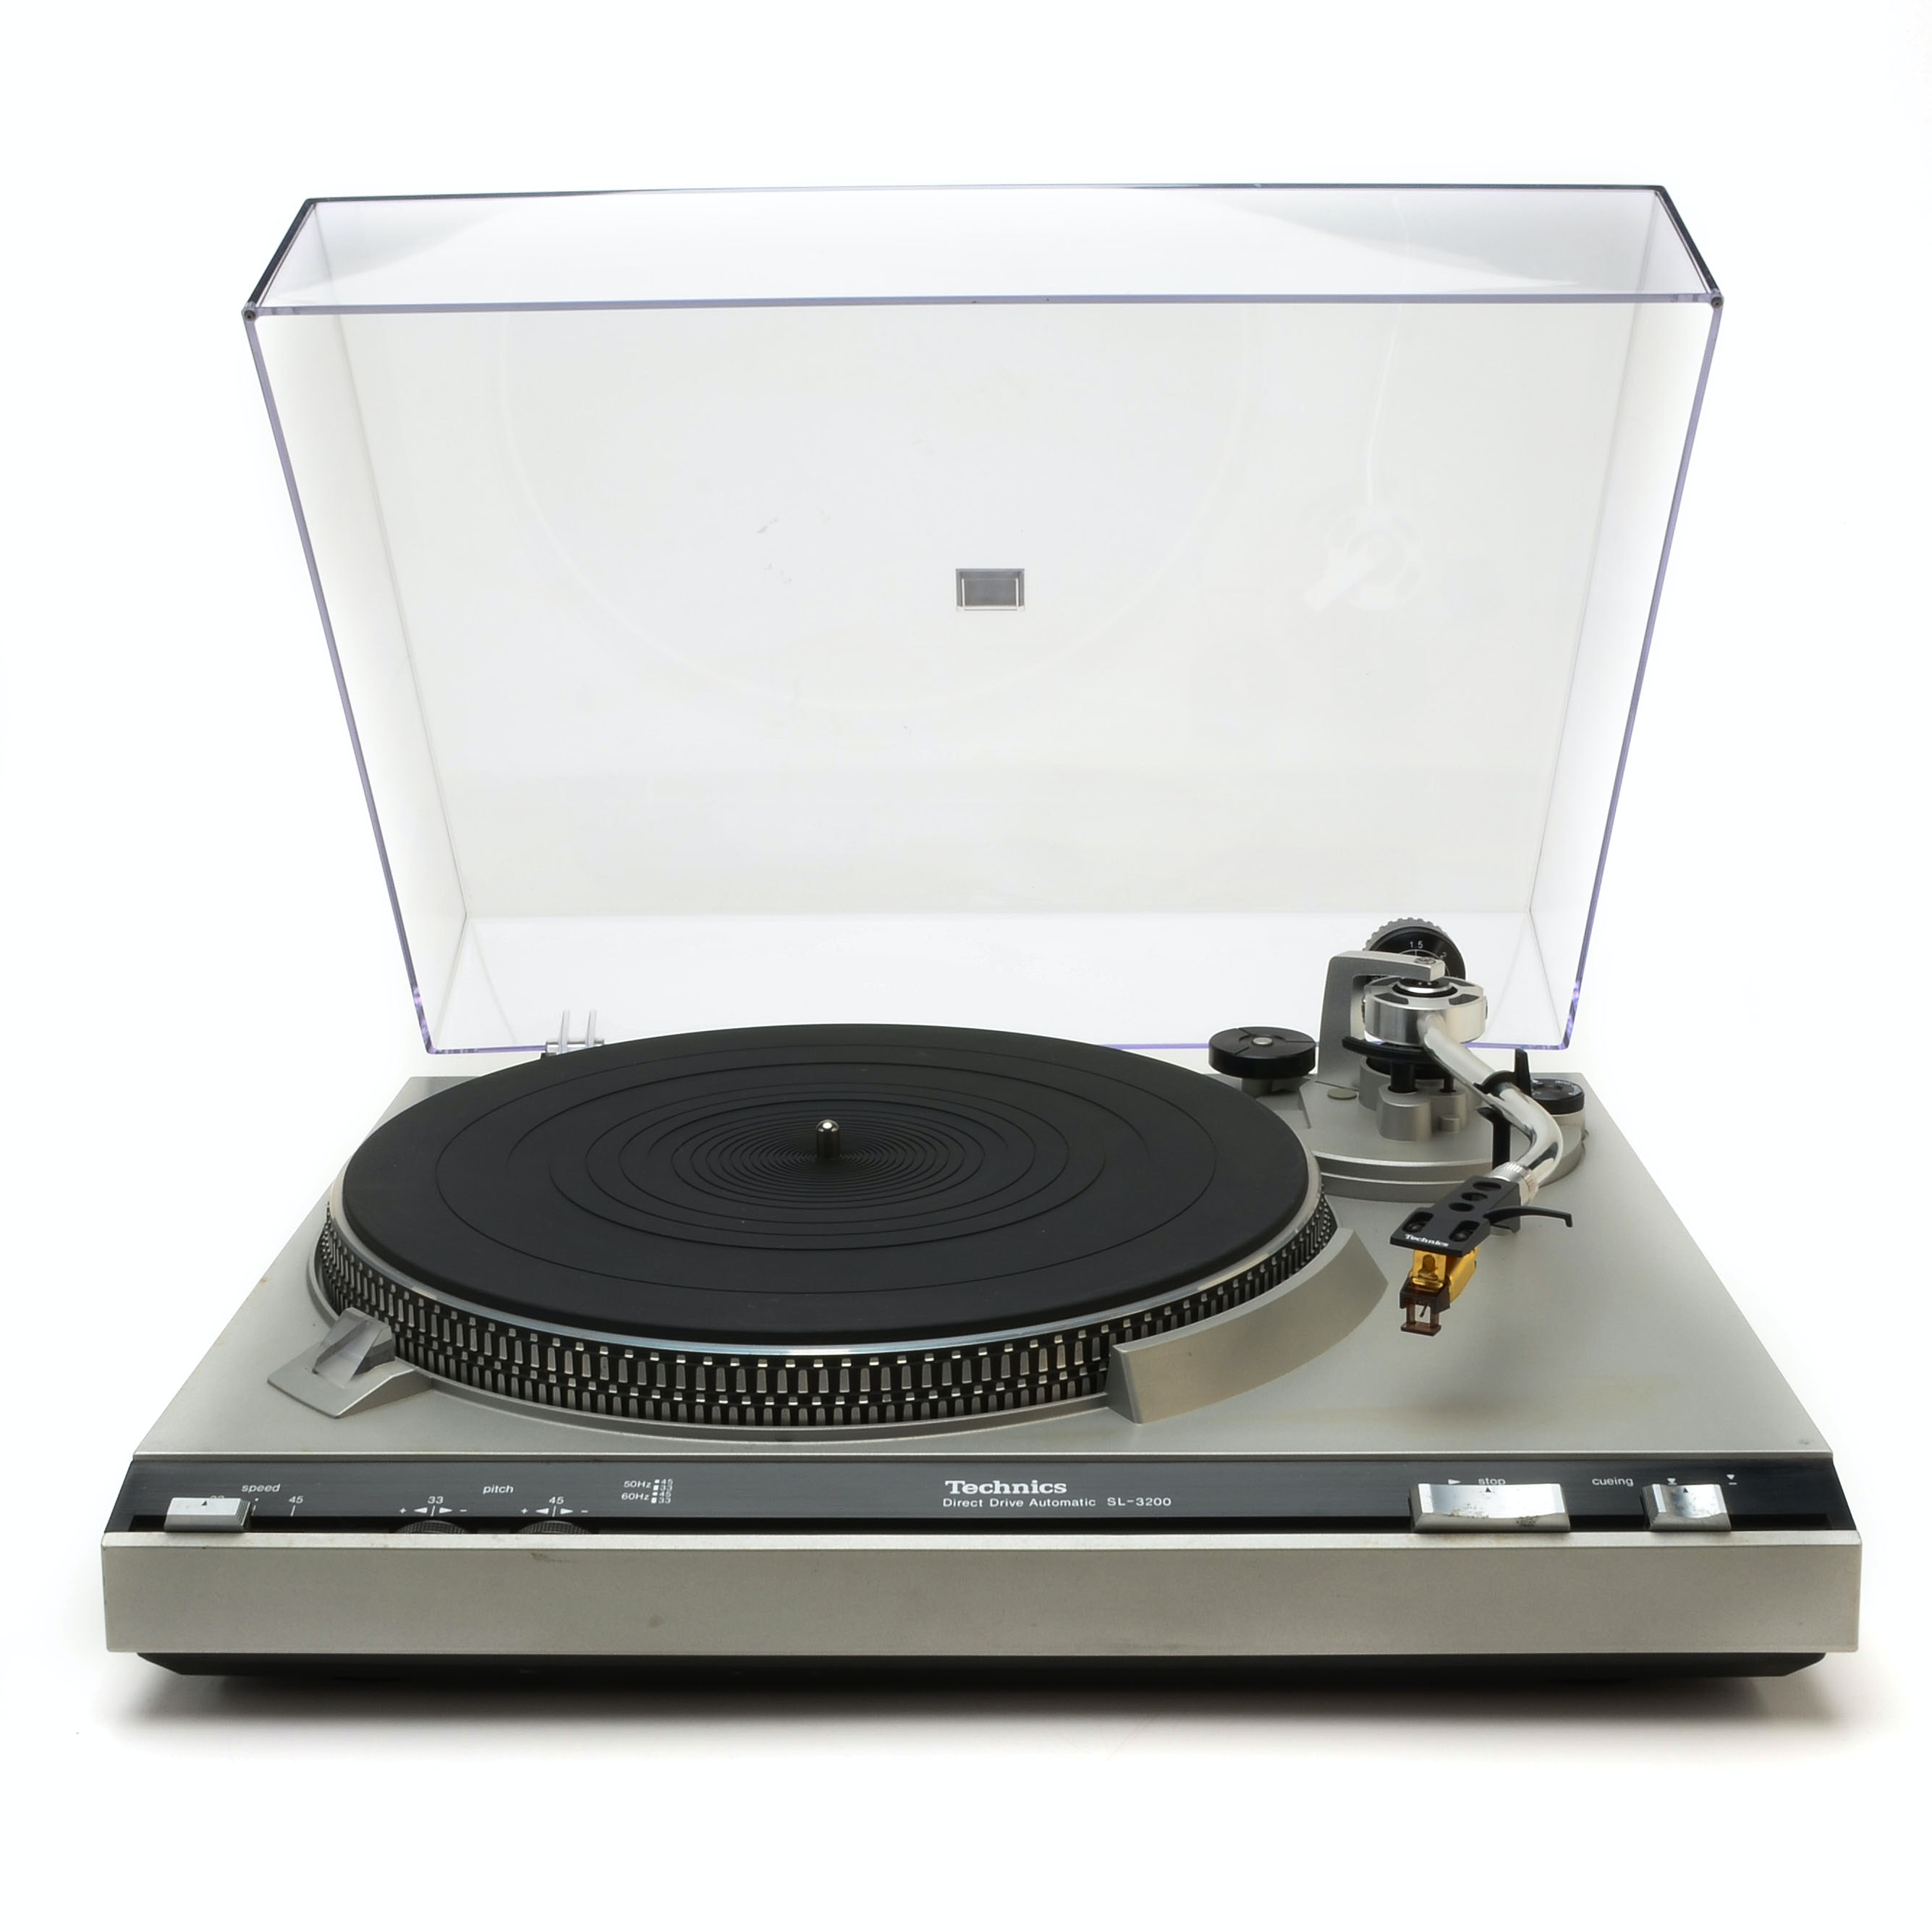 Technics SL-3200 Direct Drive Turntable